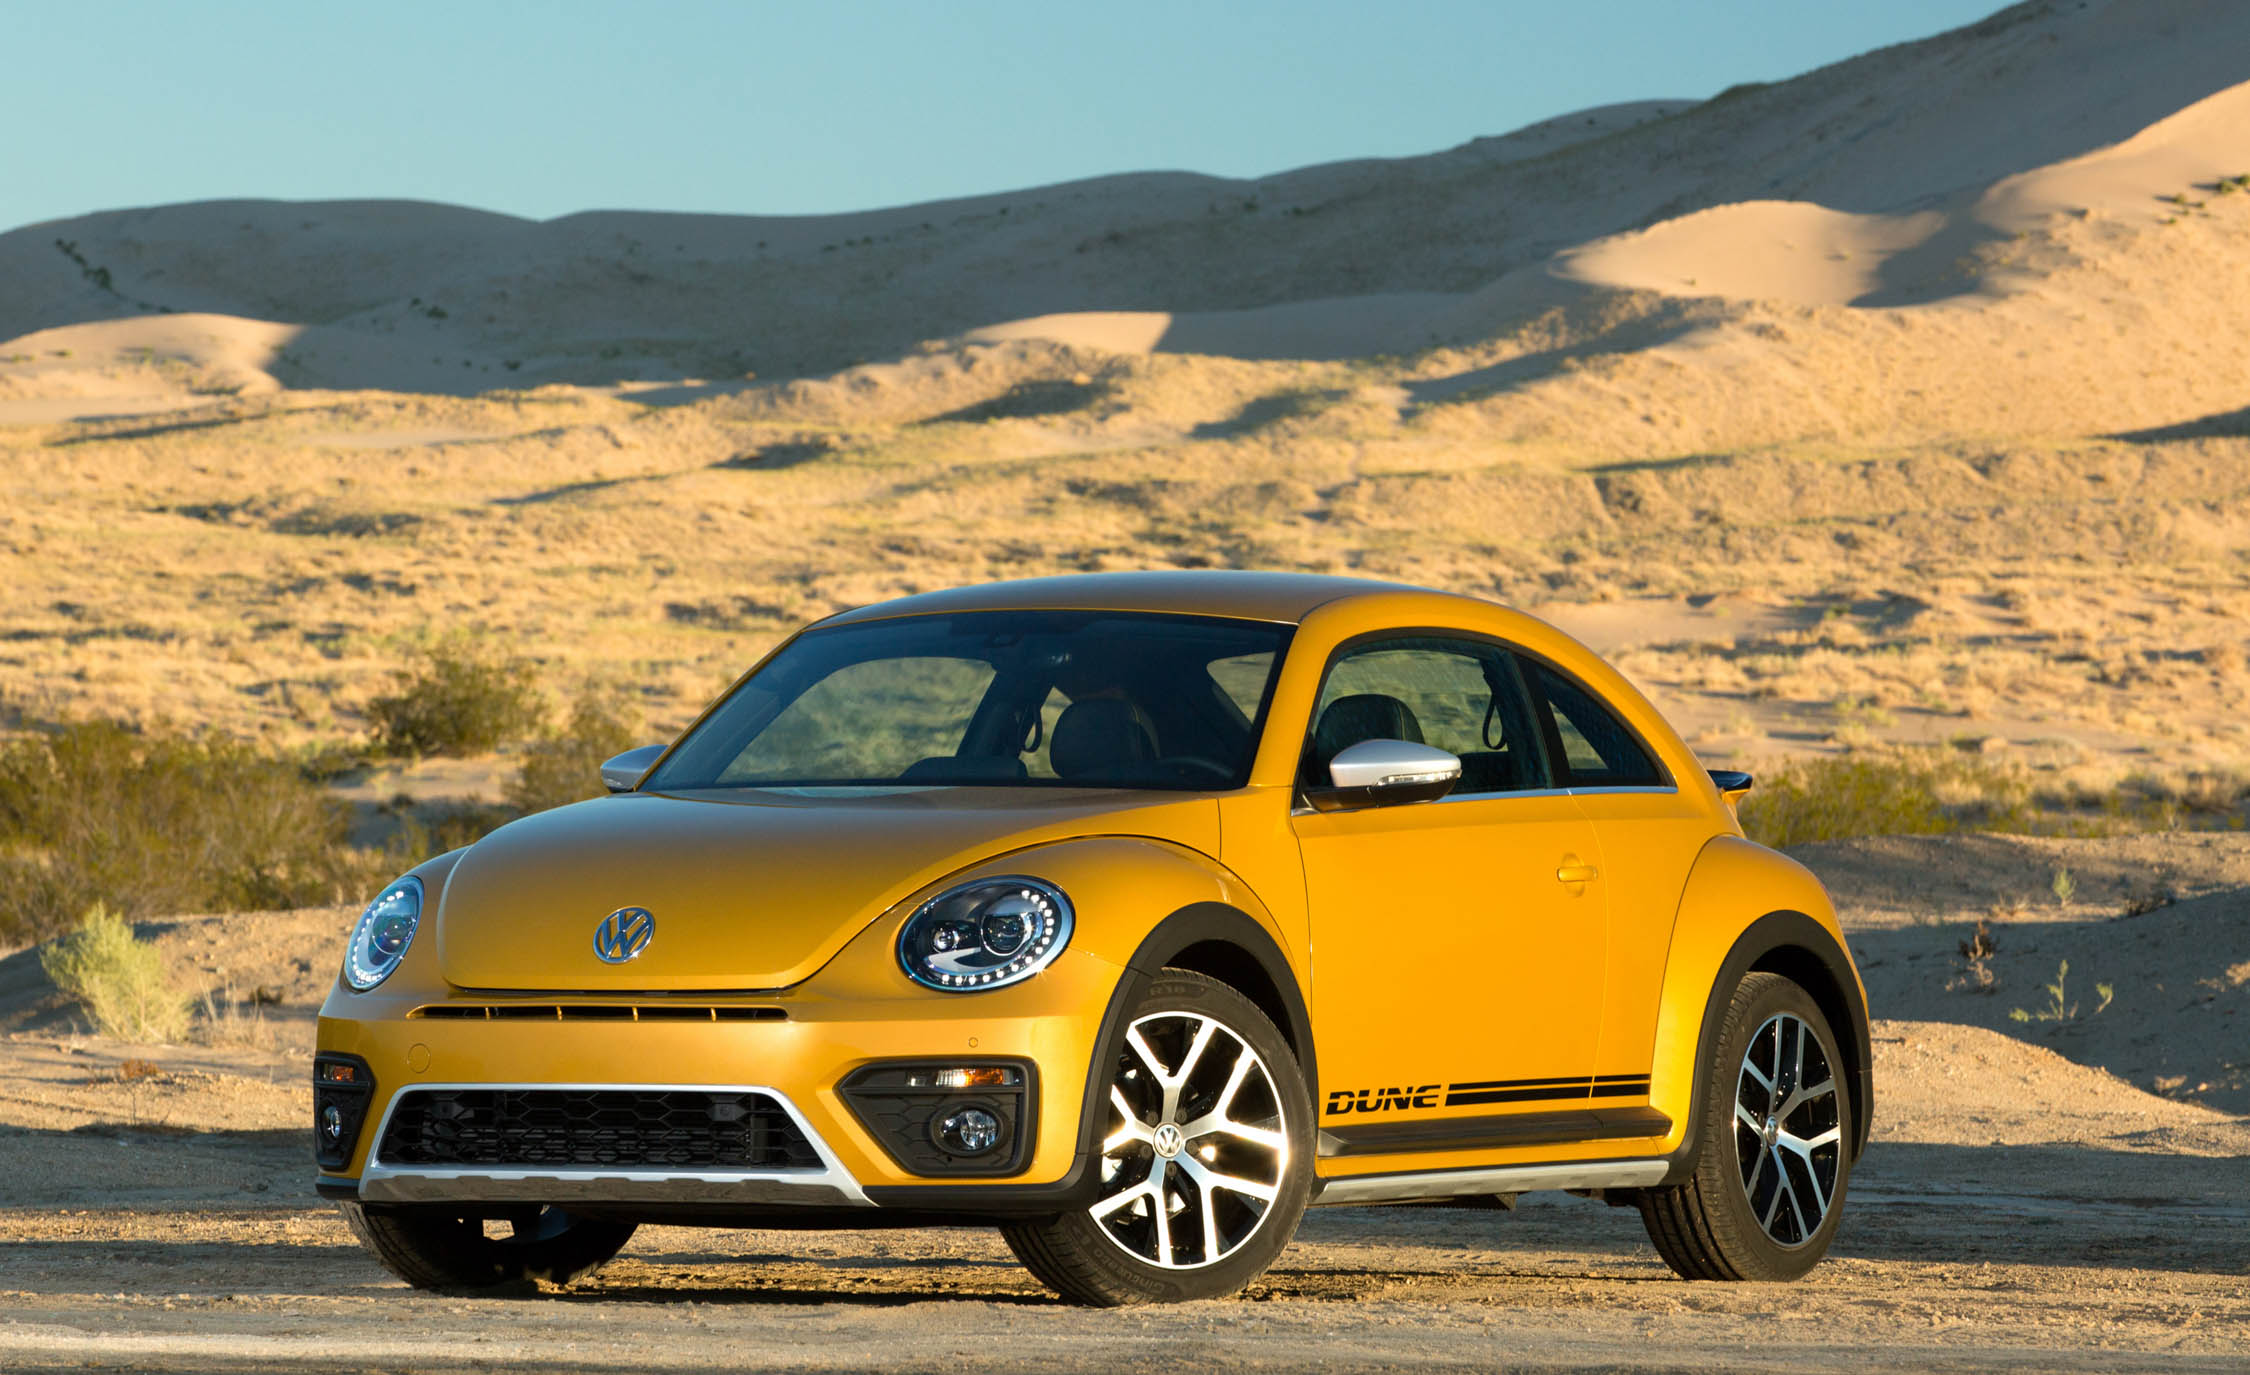 2016 Volkswagen Beetle Dune Exterior Full Front And Side (View 31 of 32)